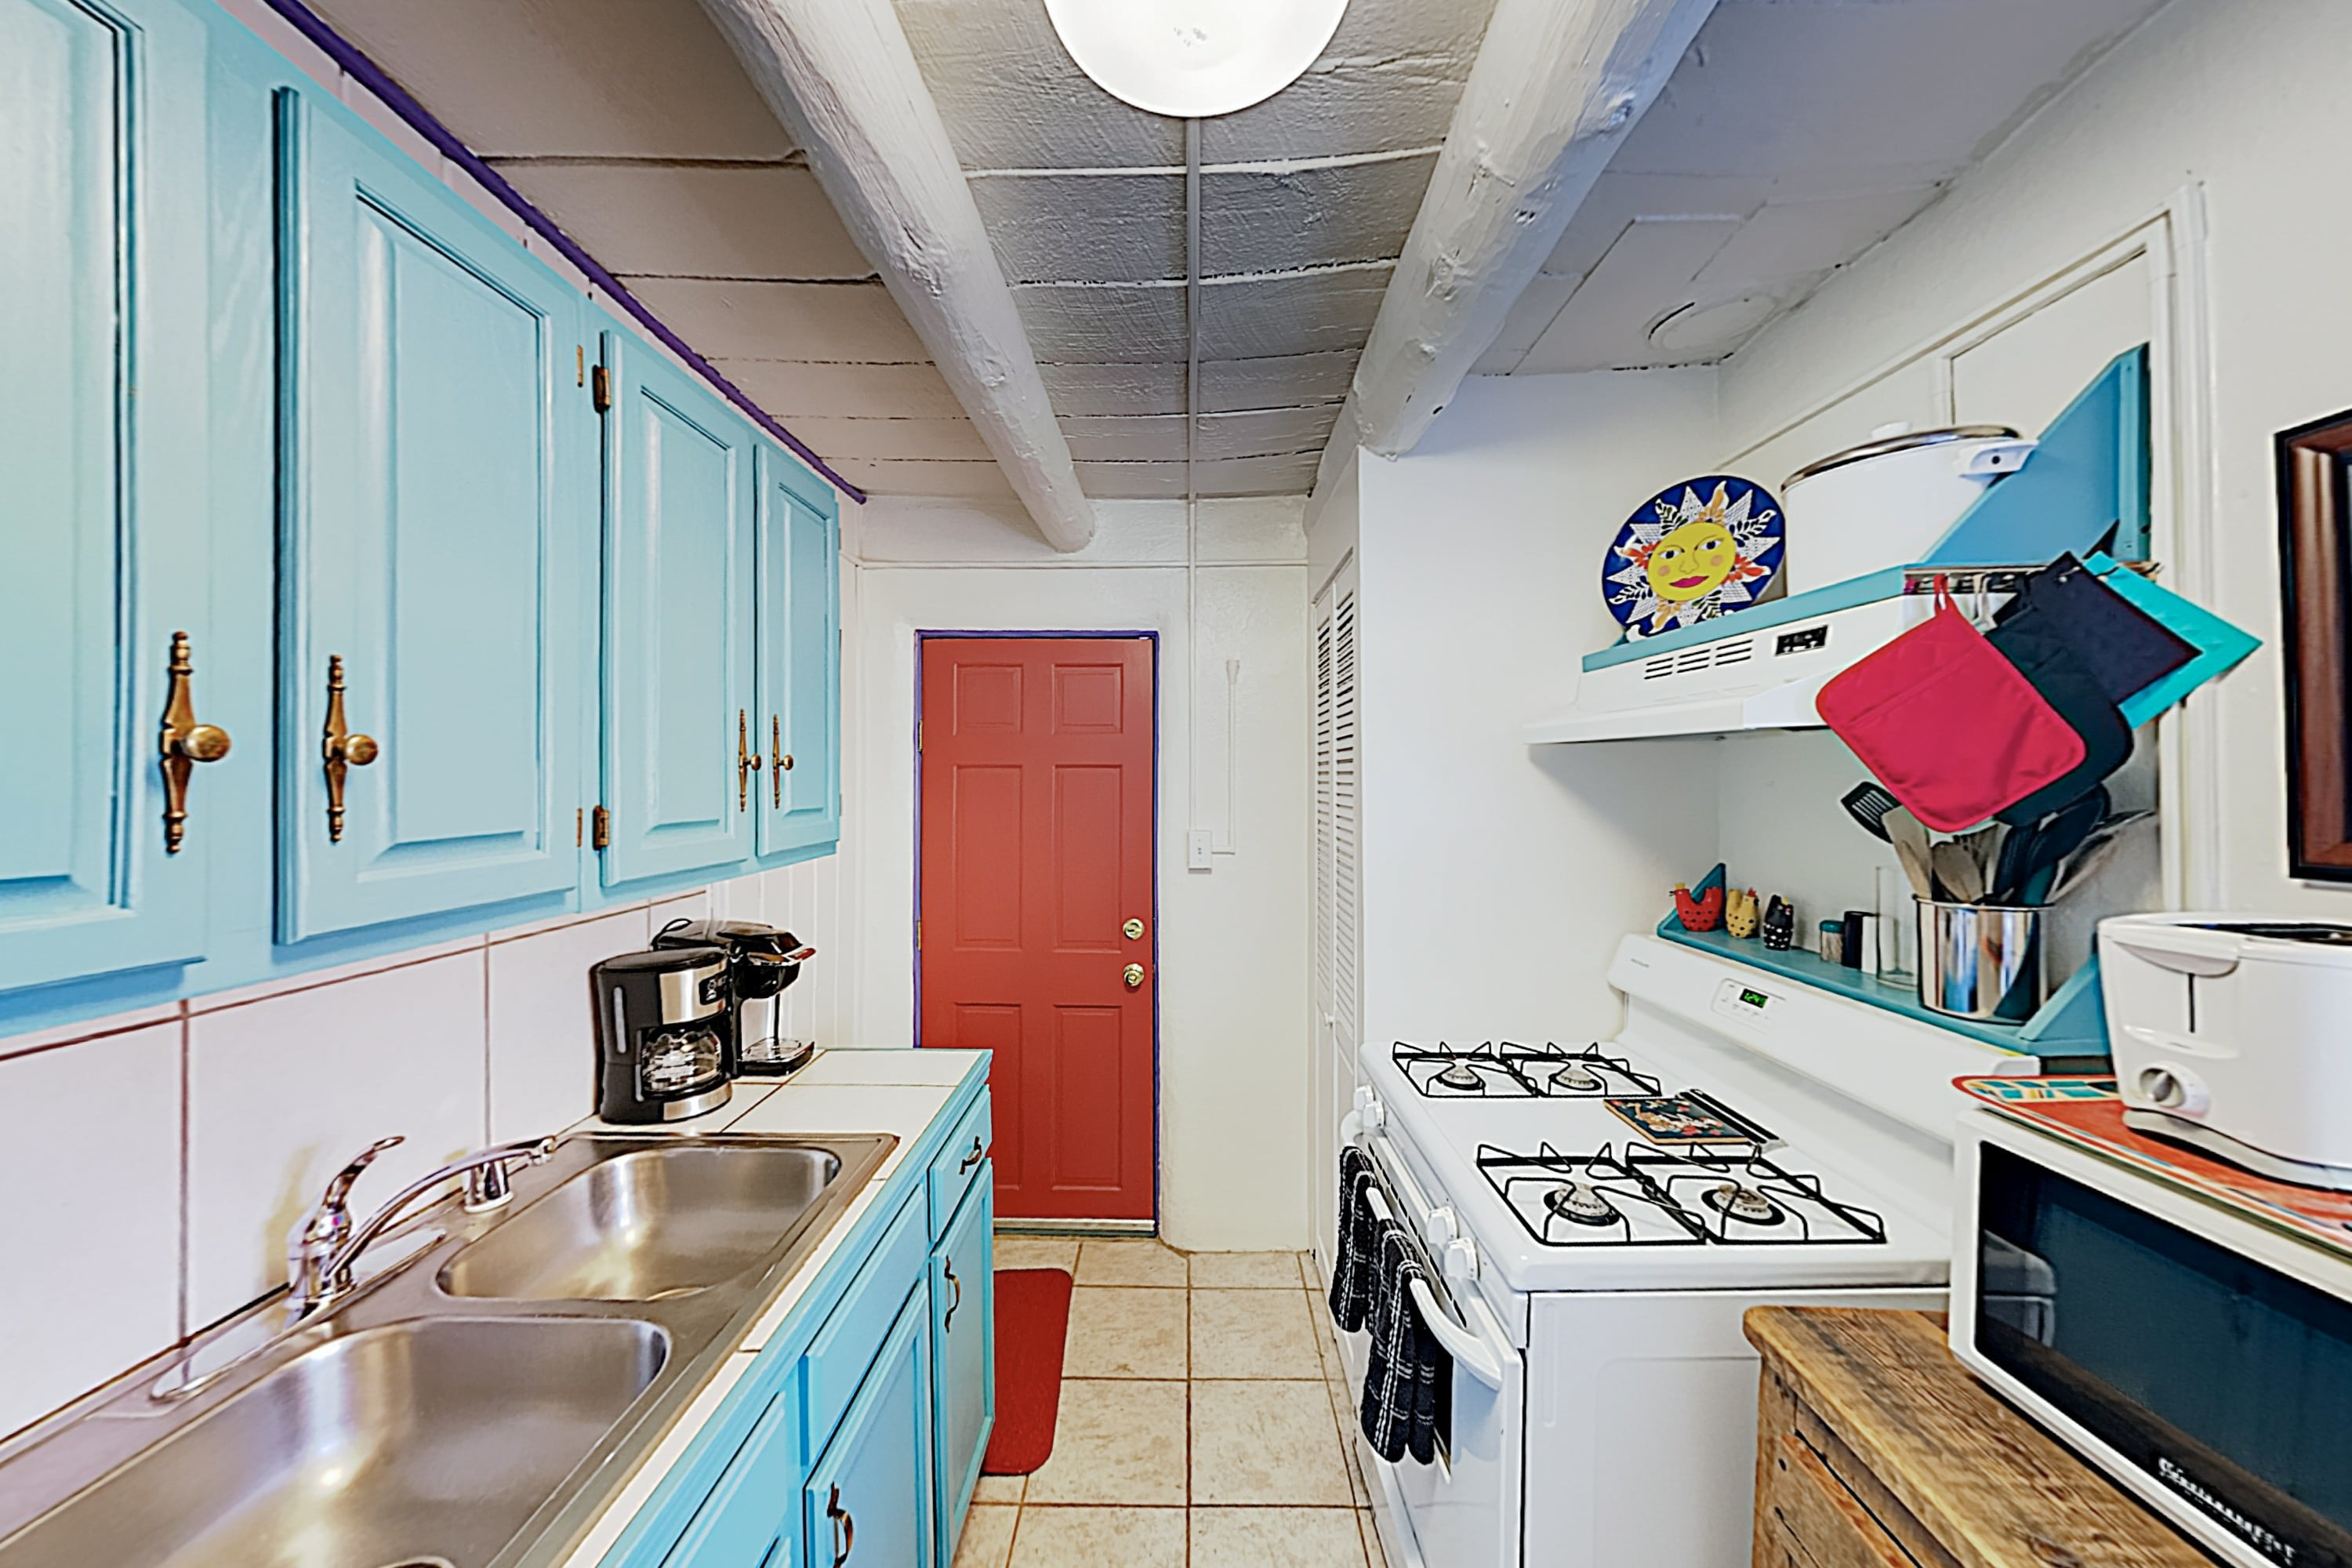 Channel your inner chef in a well-equipped kitchen detailed with colorful cabinetry.